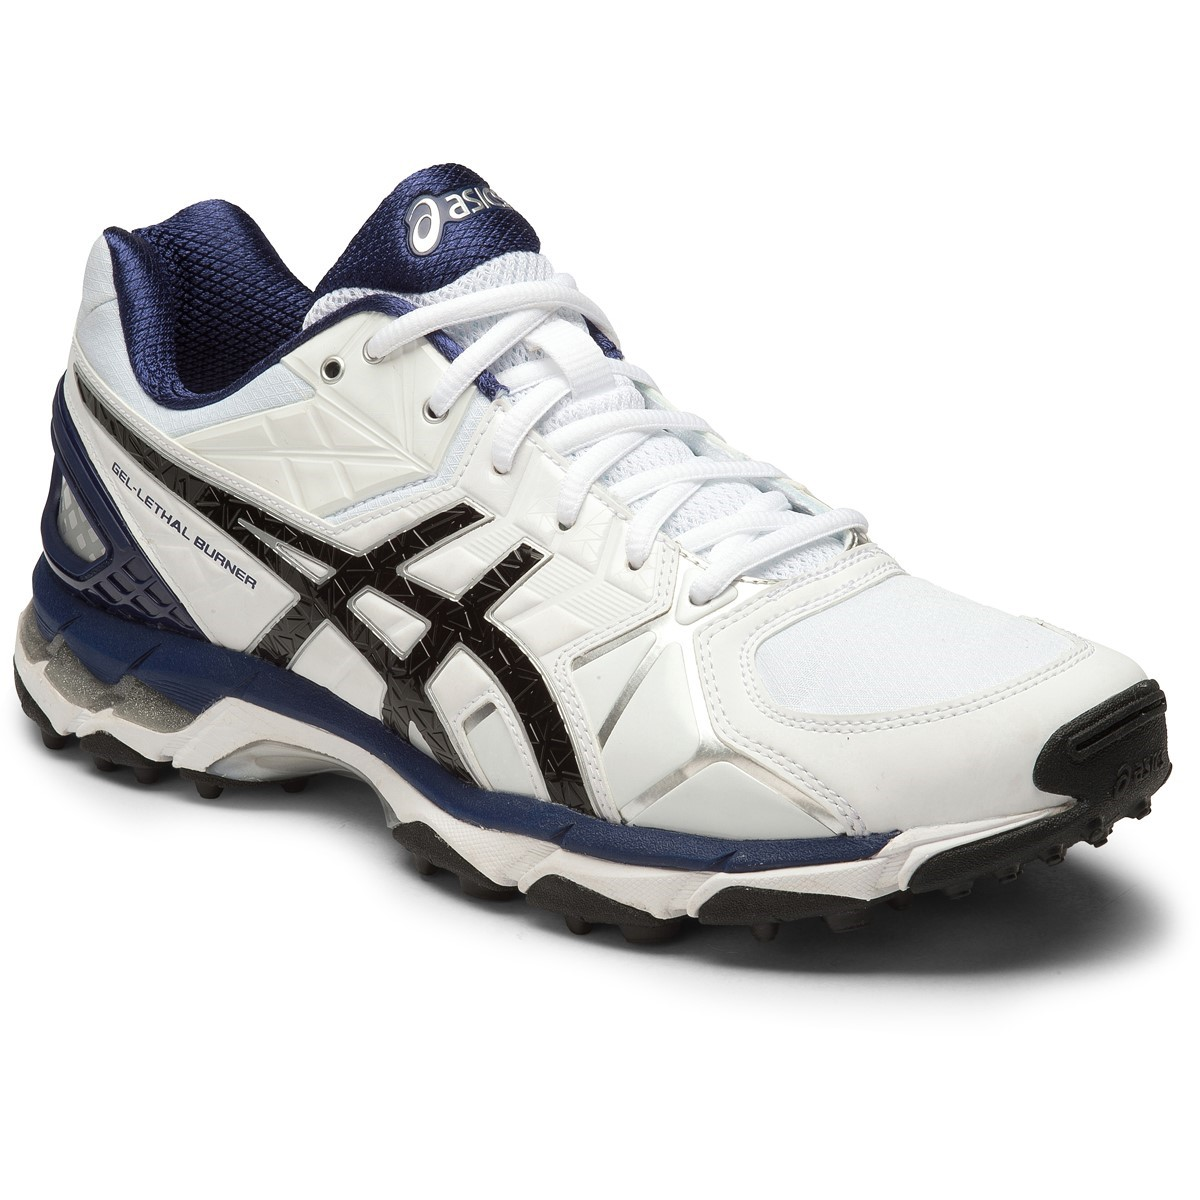 Asics Gel Lethal Burner Mens Cross Training and Turf Shoes